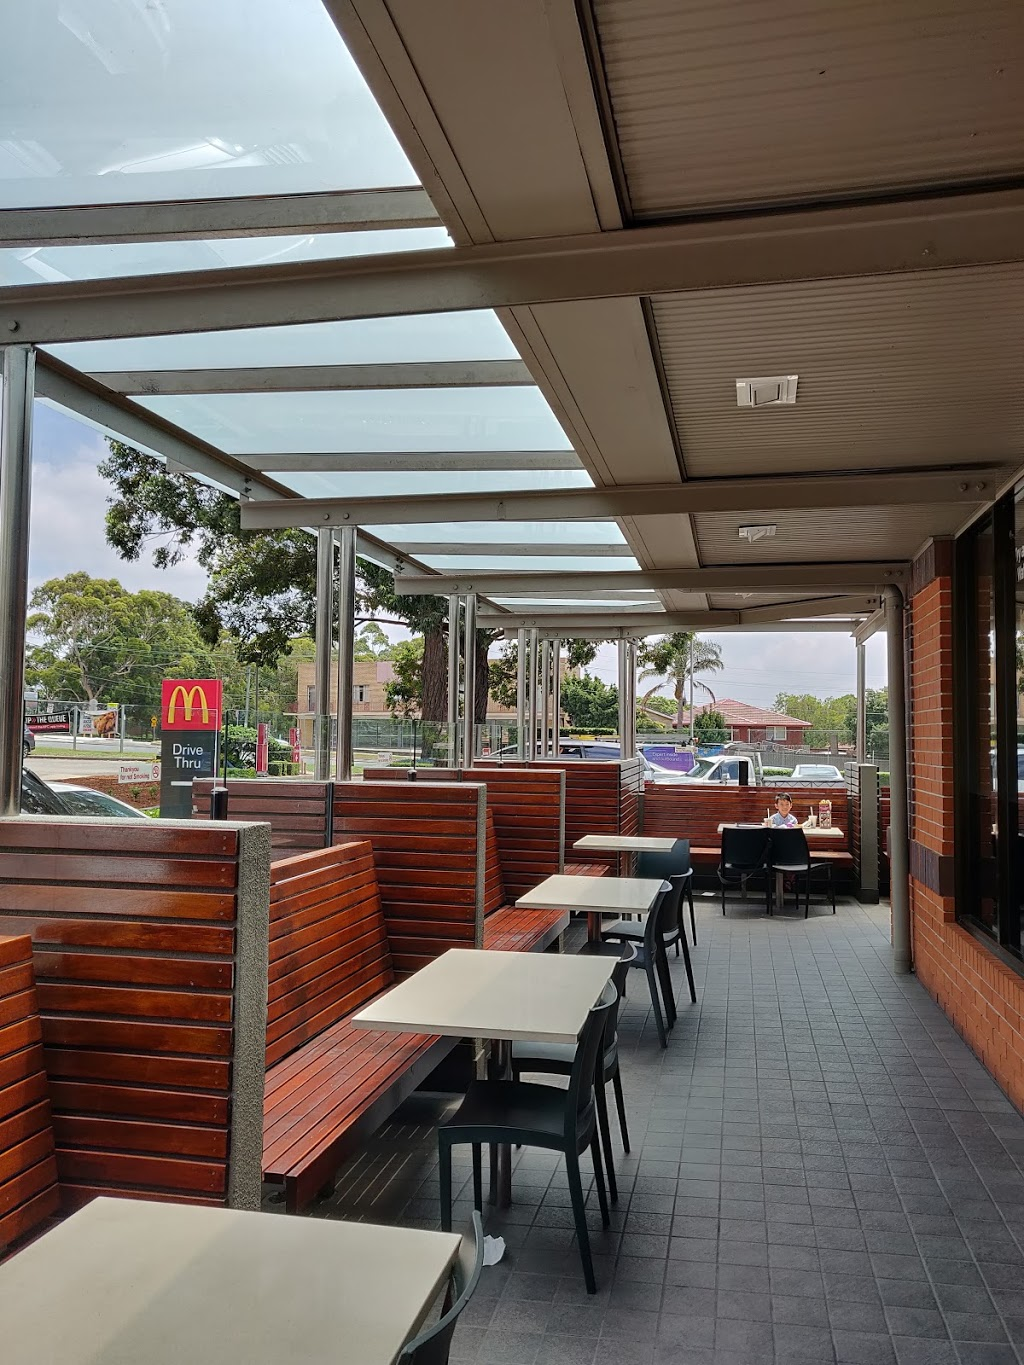 McDonalds Enfield NSW | cafe | 618 Liverpool Rd, Enfield NSW 2136, Australia | 0297426334 OR +61 2 9742 6334